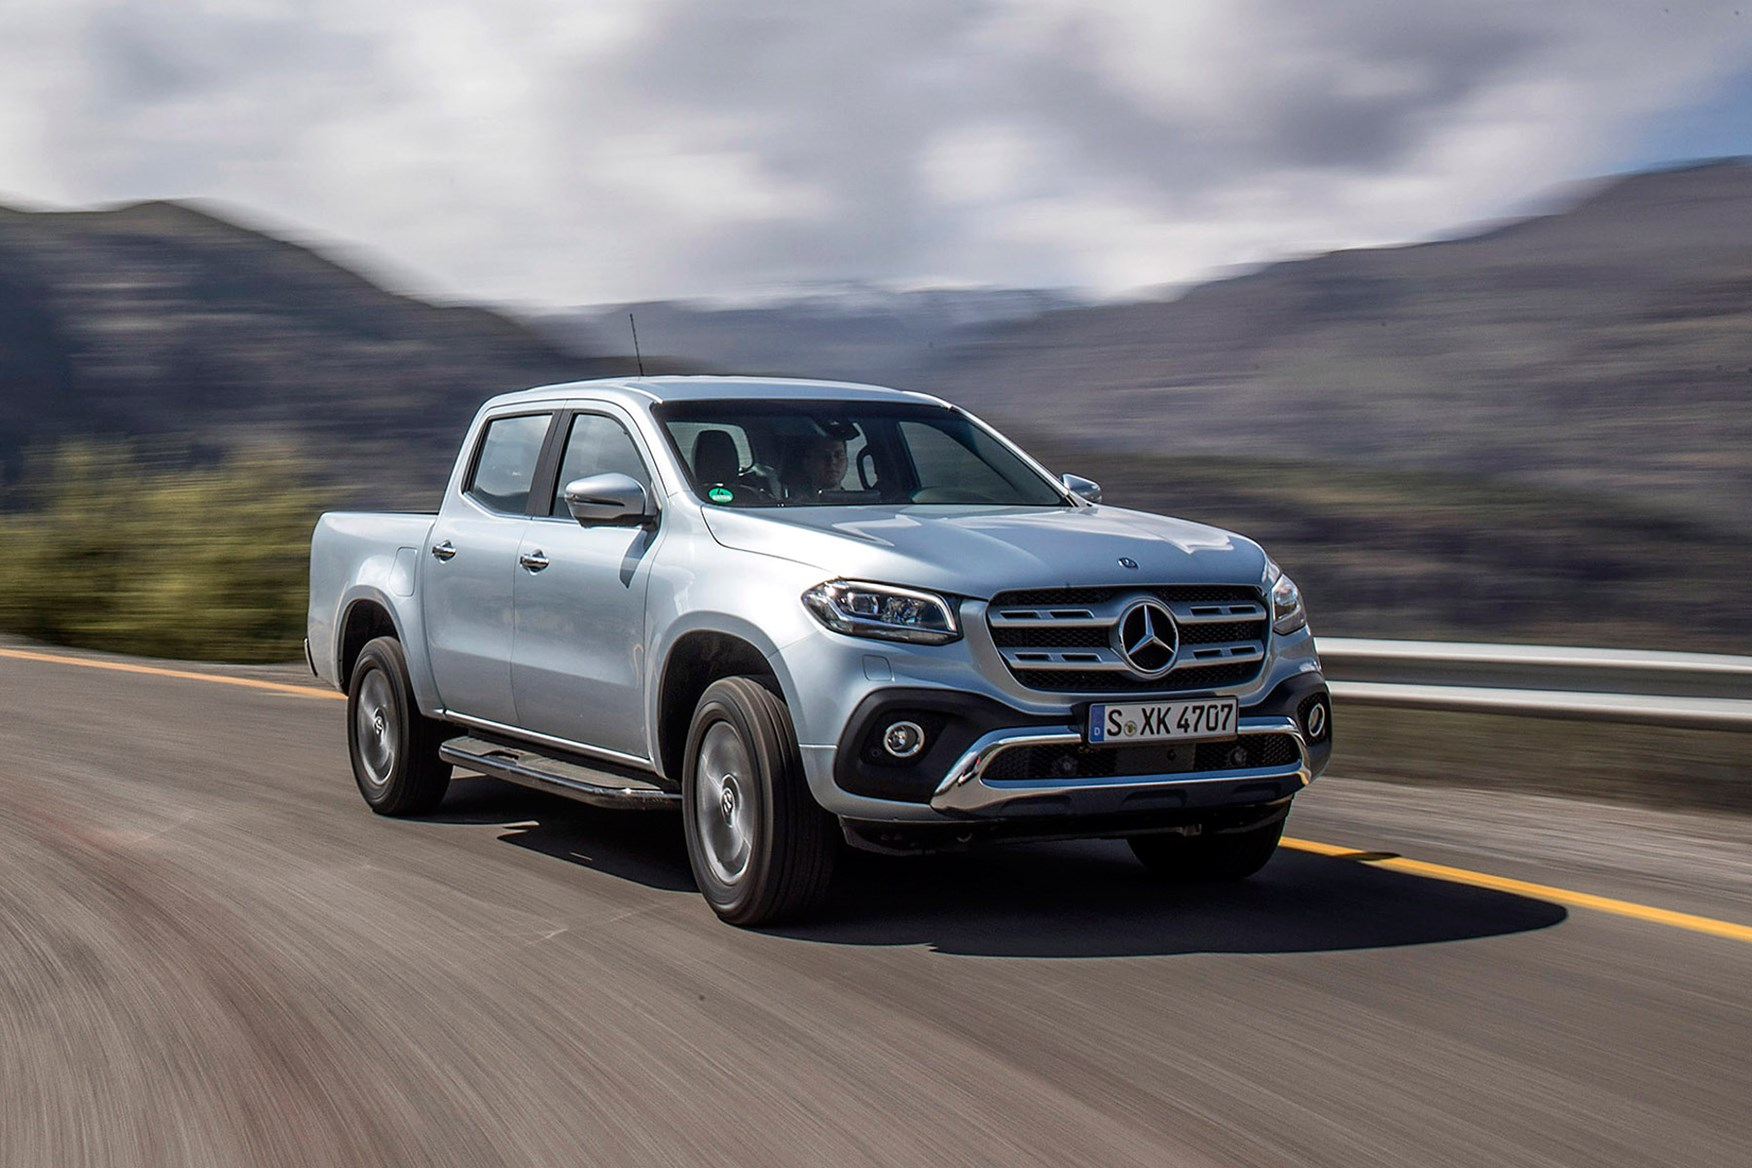 Mercedes-Benz X-Class full review on Parkers Vans - driving experience